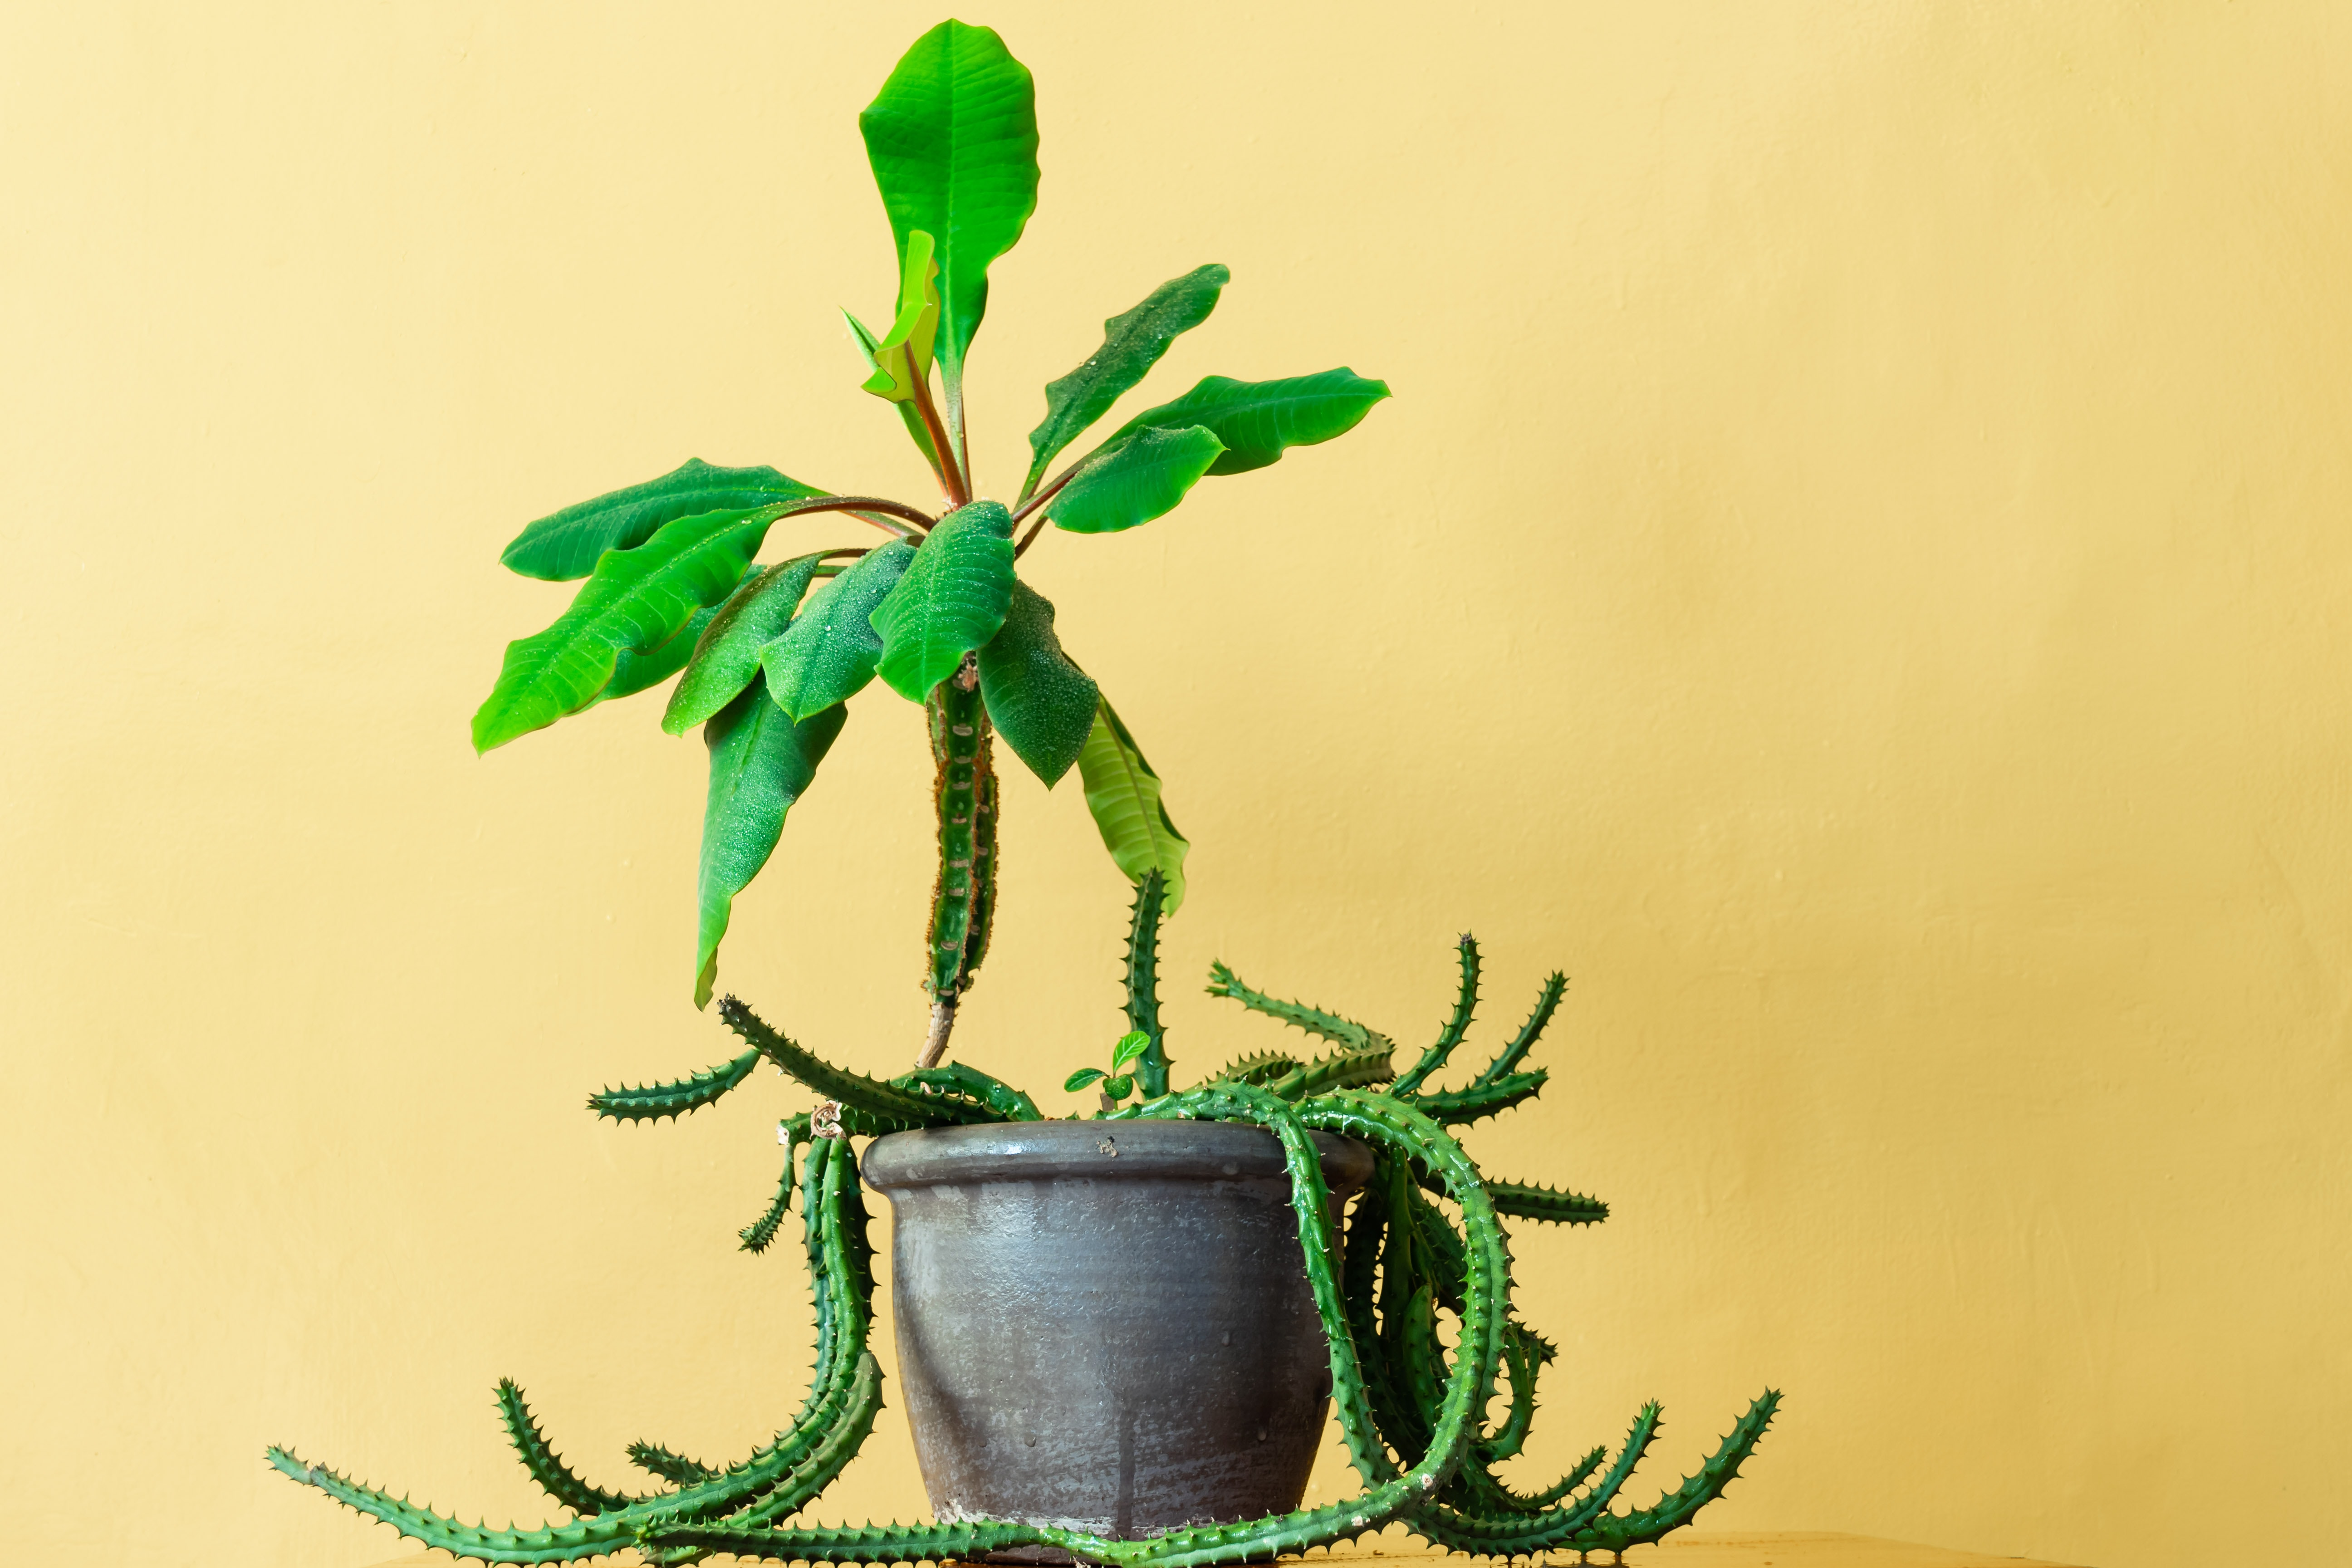 green leafed plant with round brown pot